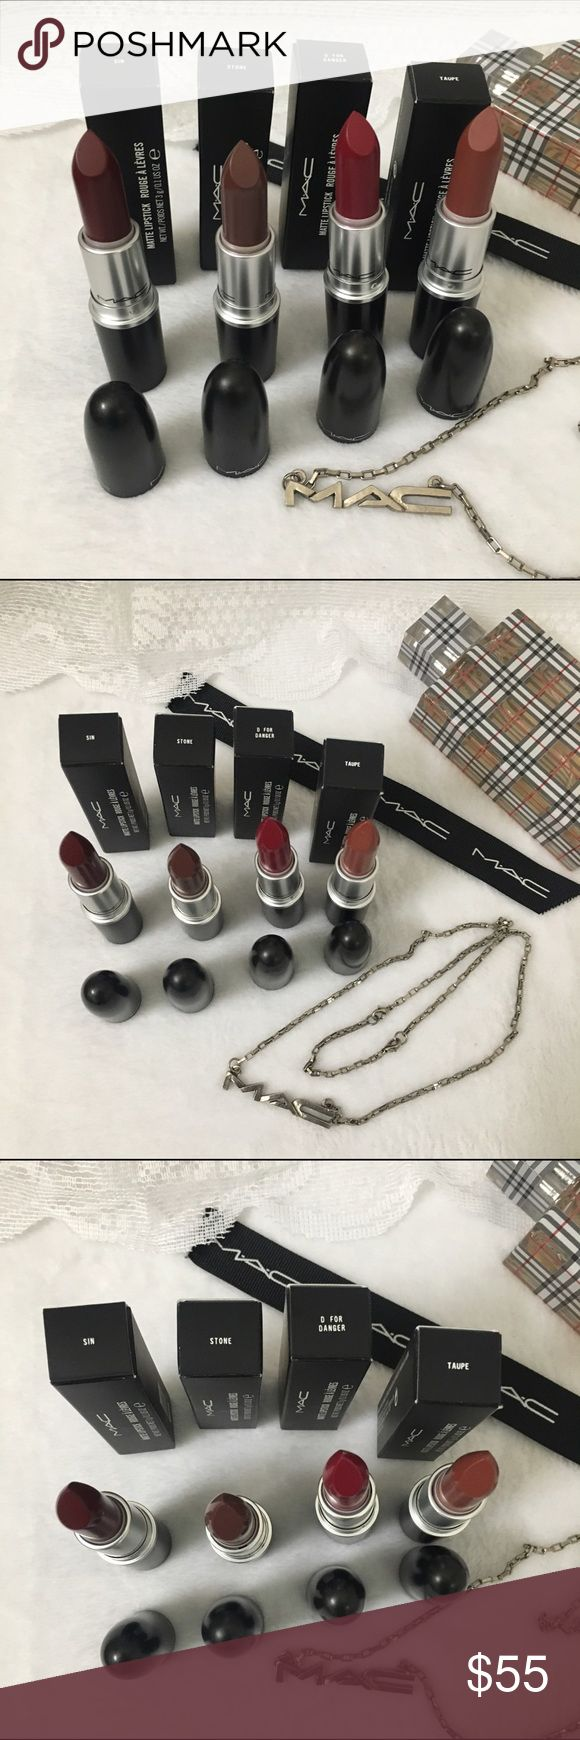 💋✨Mac Authentic Matte holiday winter color bundle Authentic matte lipsticks all BNIB . Colors are sin , stone, D for danger , Taupe . Not separating . I have separate listing for requests 😘✨✨✨✨💕👄👄❤️❤️❤️❤️ MAC Cosmetics Makeup Lipstick